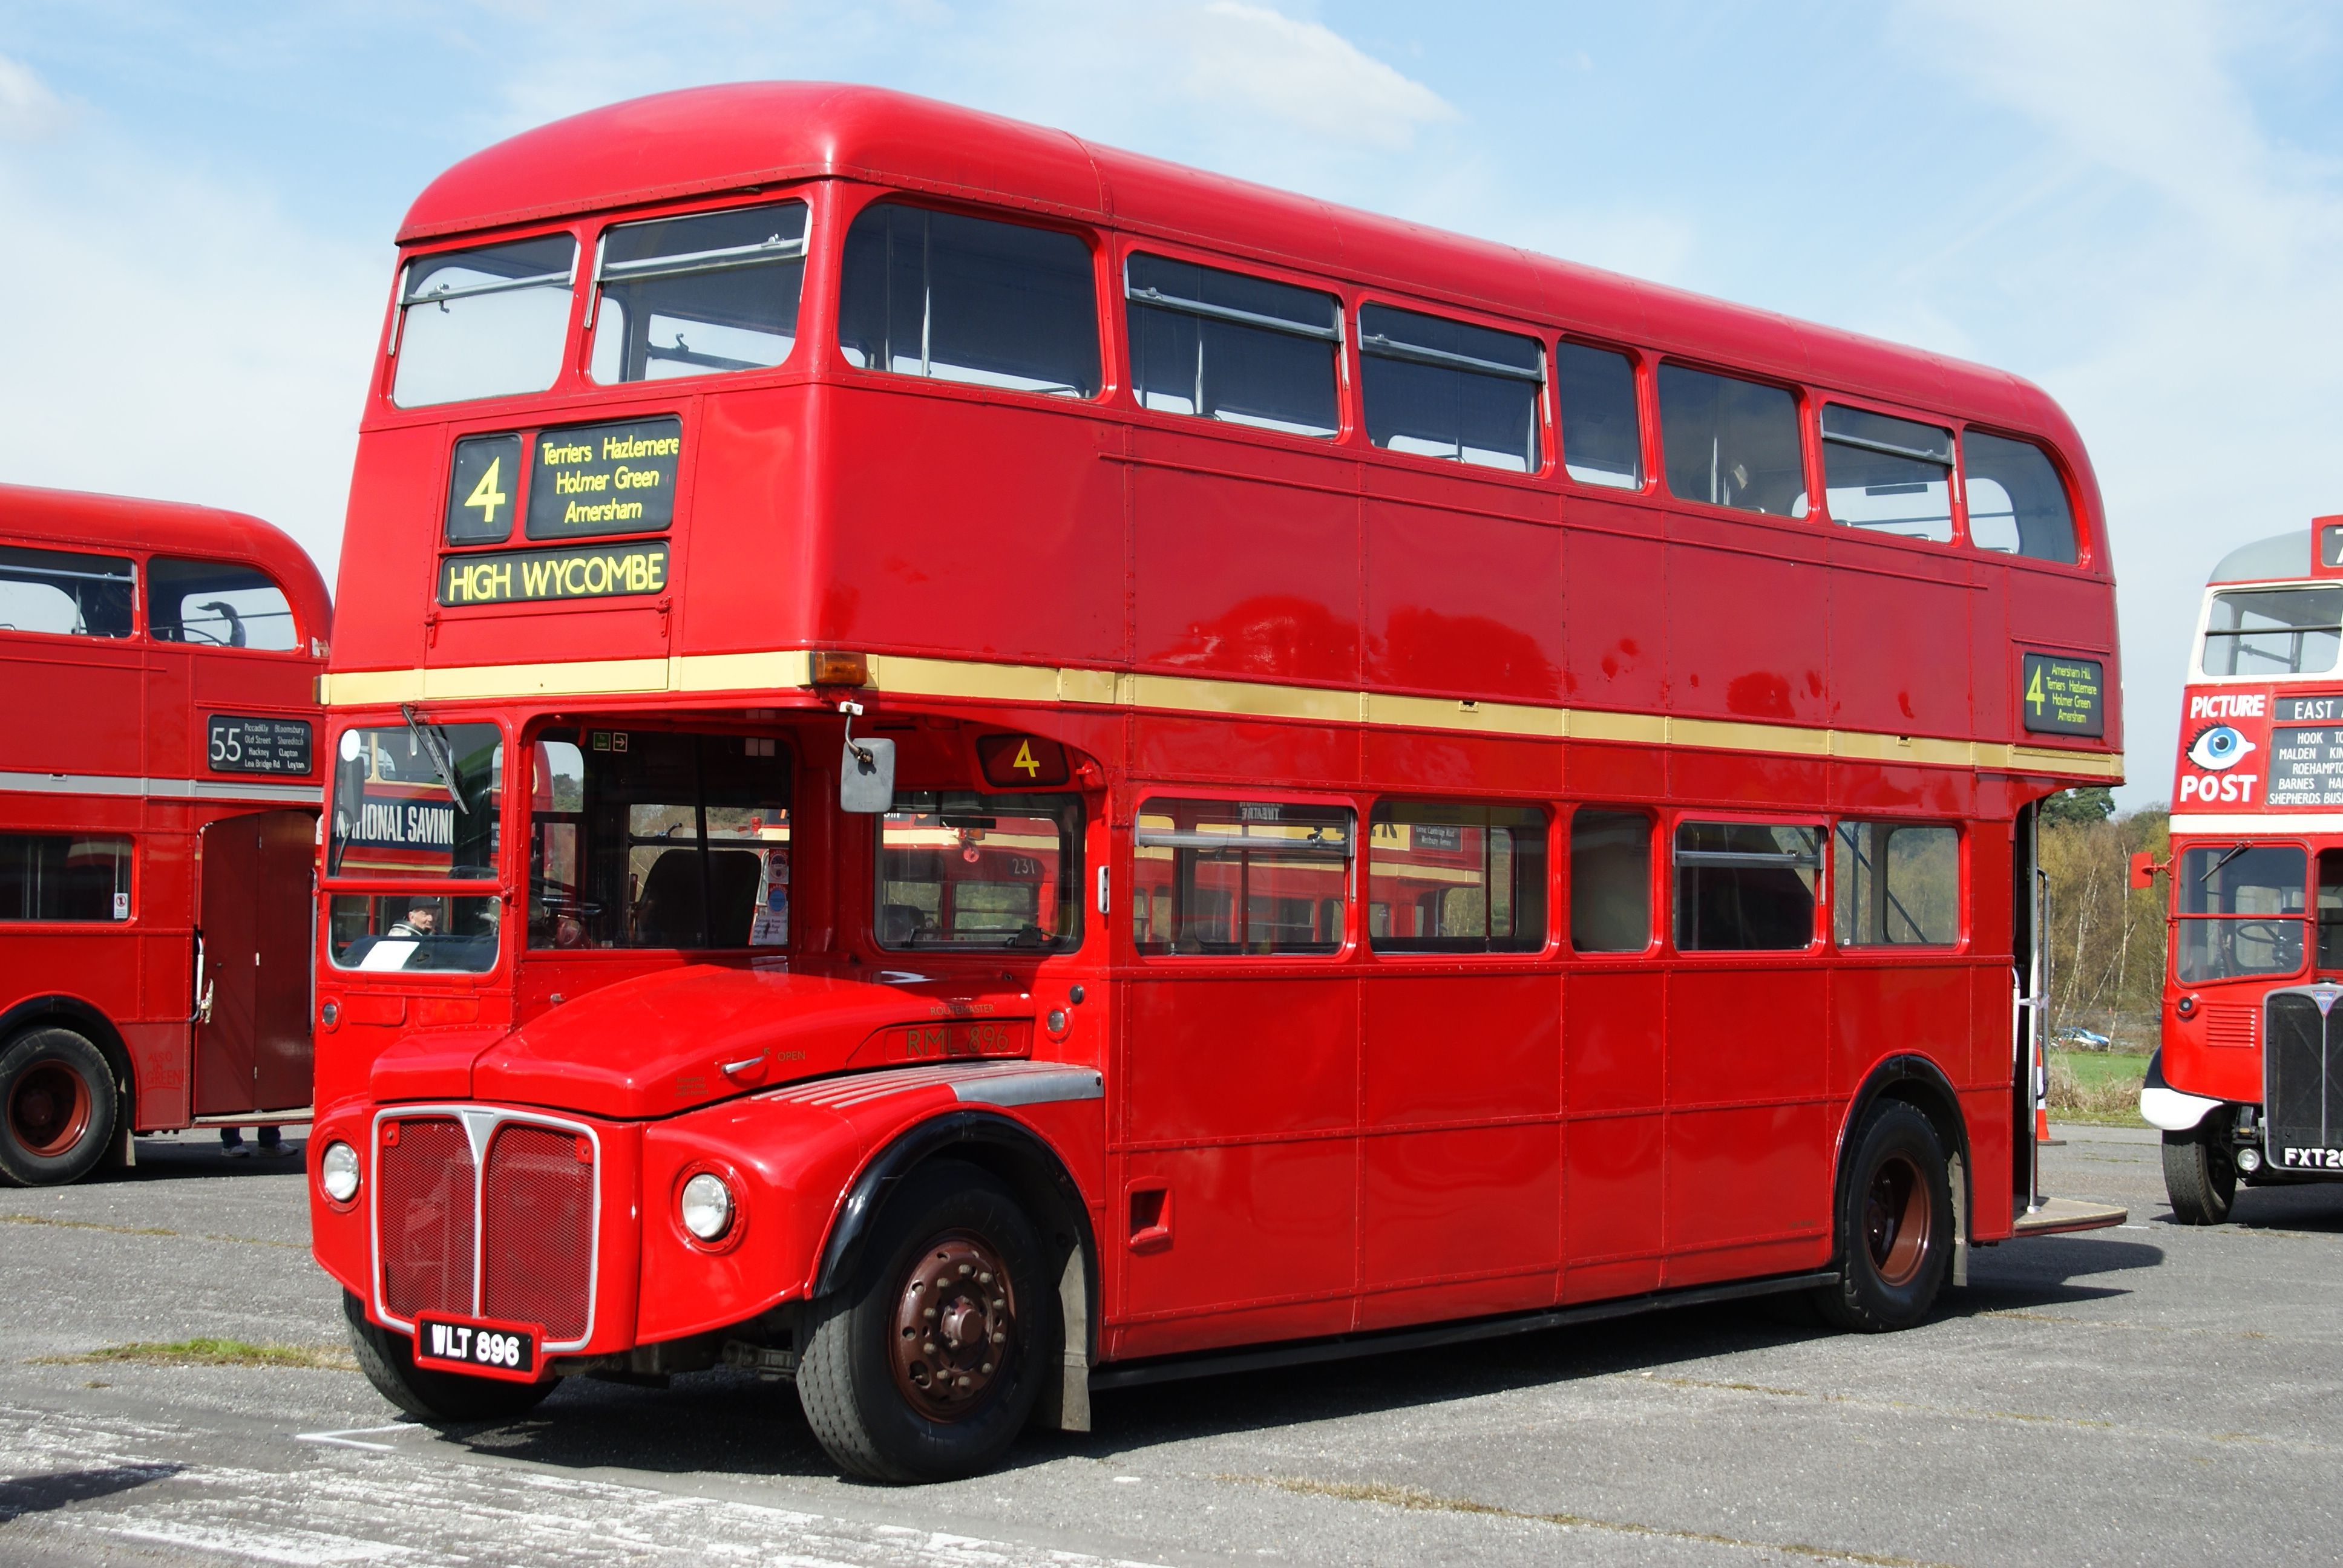 File:Routemaster RML896 (WLT 896), 2010 Cobham bus rally.jpg